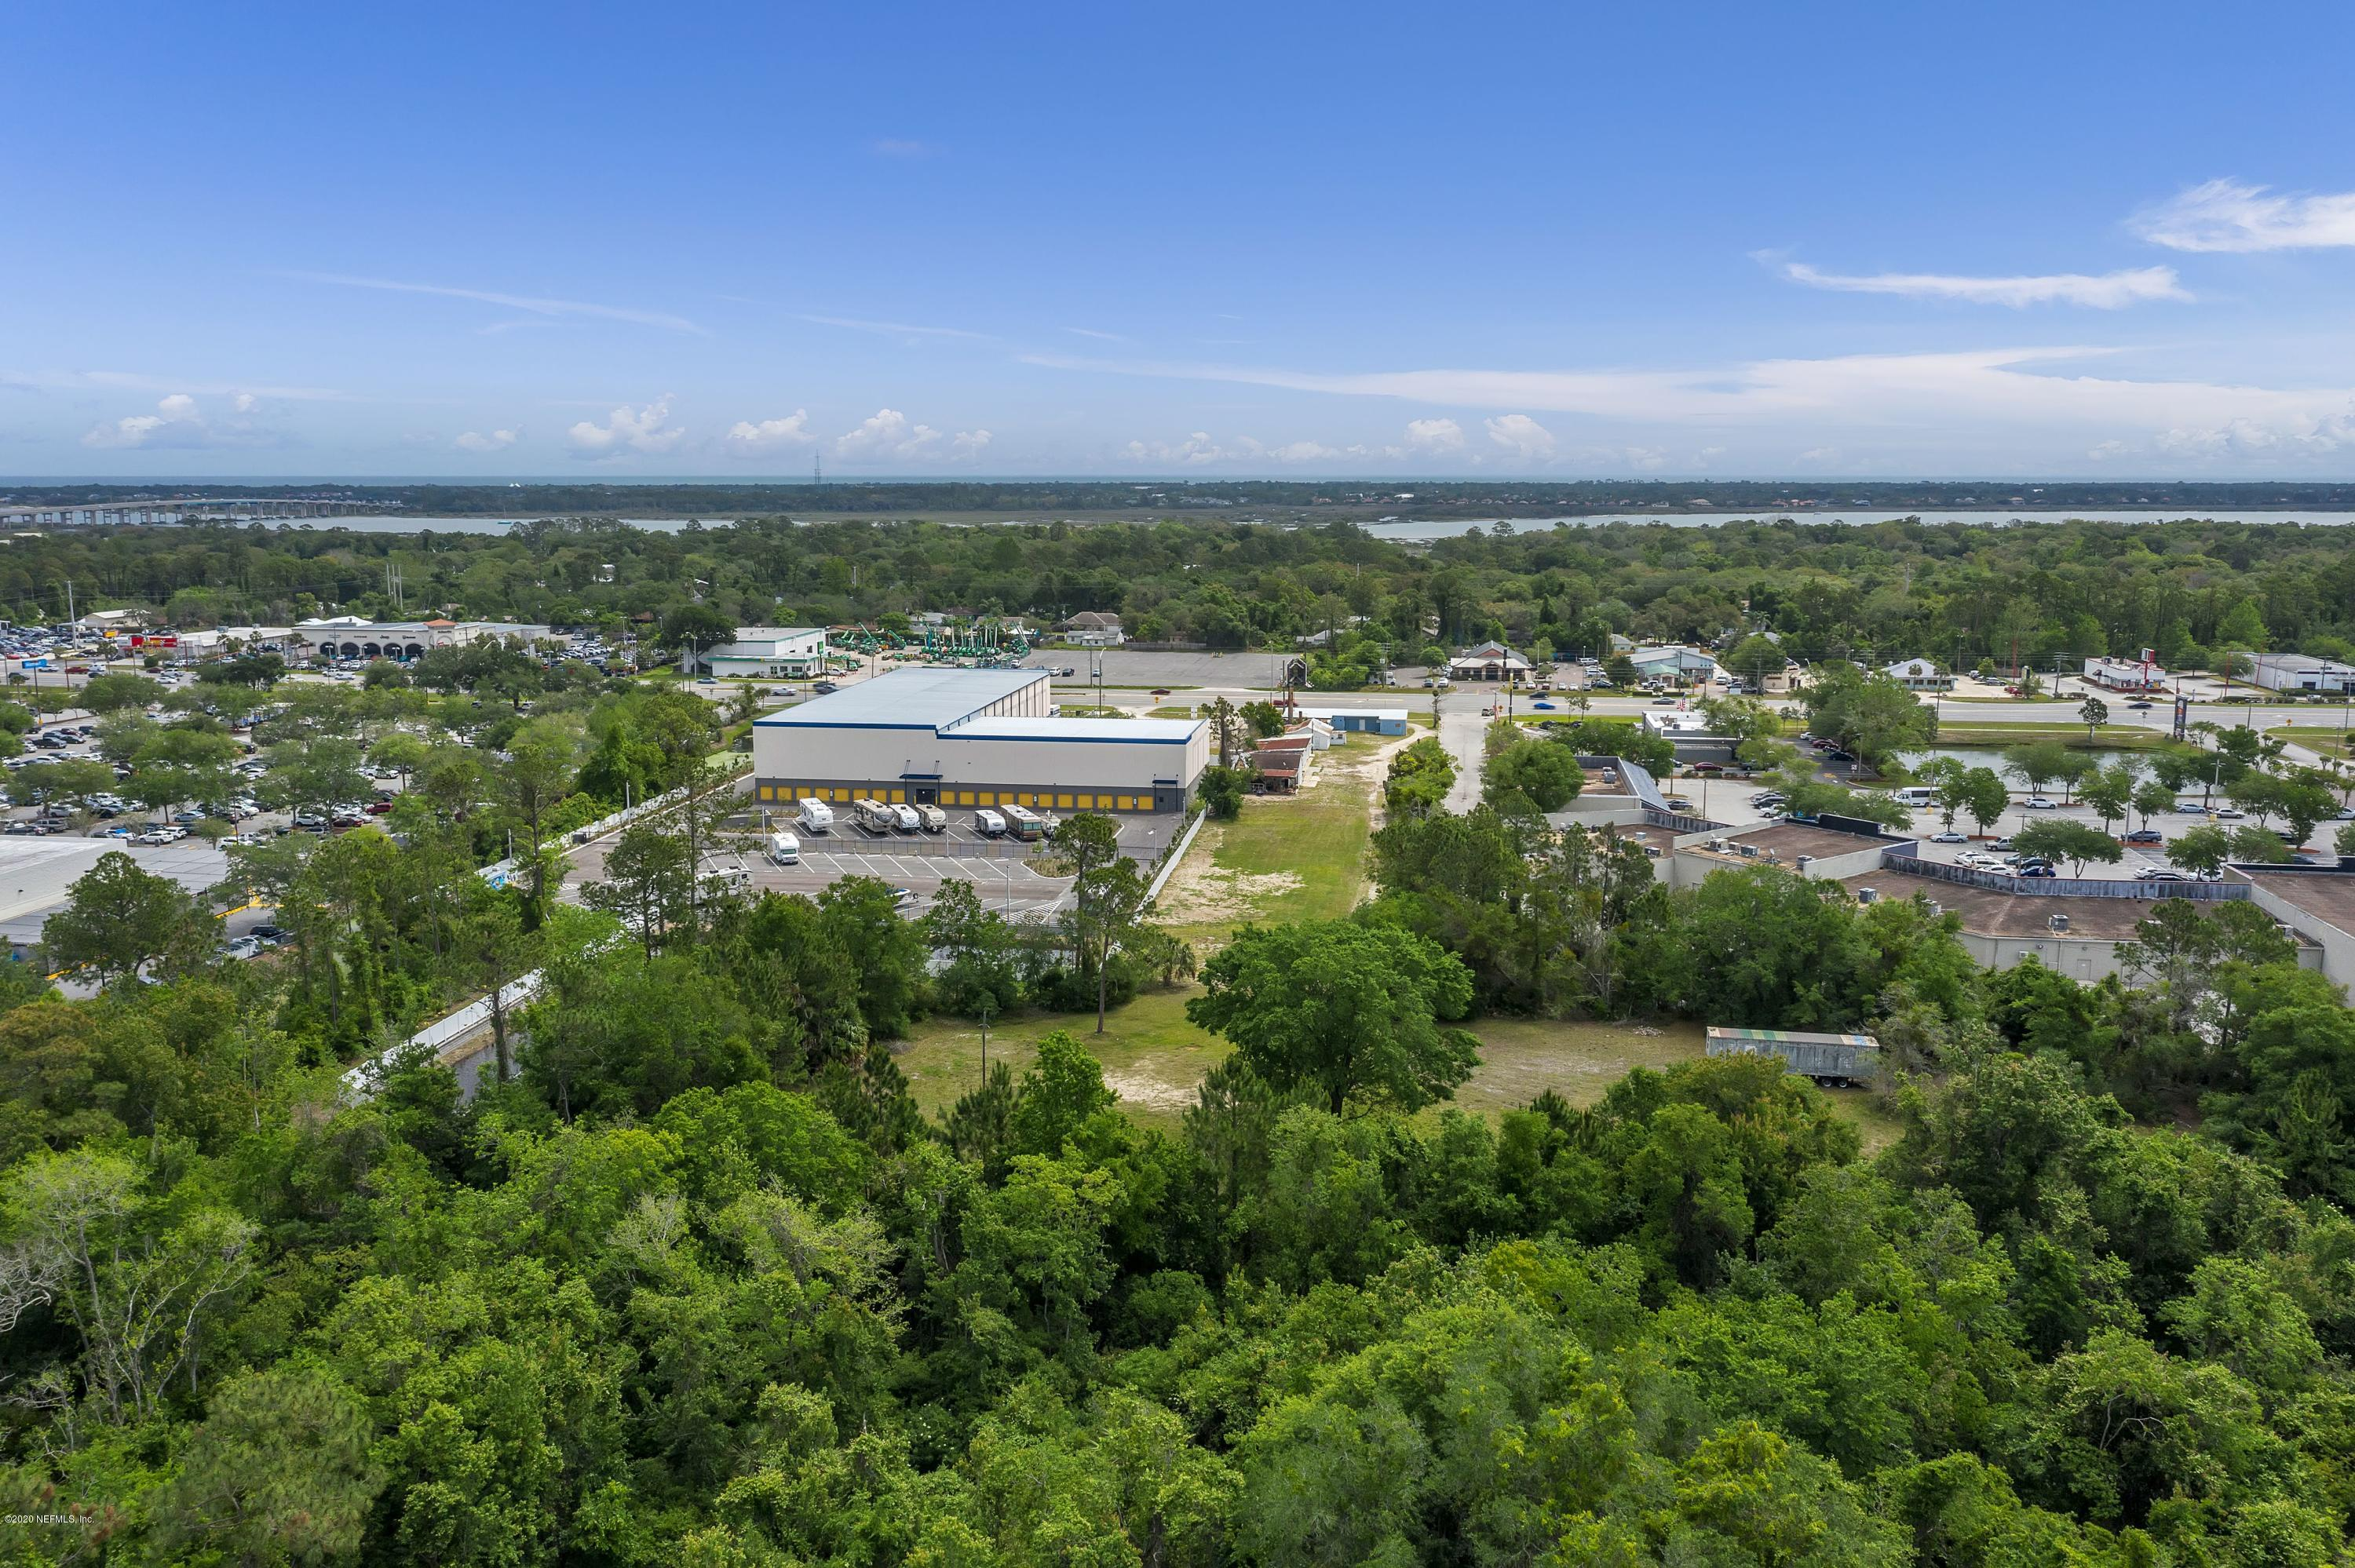 2425 US HIGHWAY 1 SOUTH, ST AUGUSTINE, FLORIDA 32086, ,Commercial,For sale,US HIGHWAY 1 SOUTH,1049286